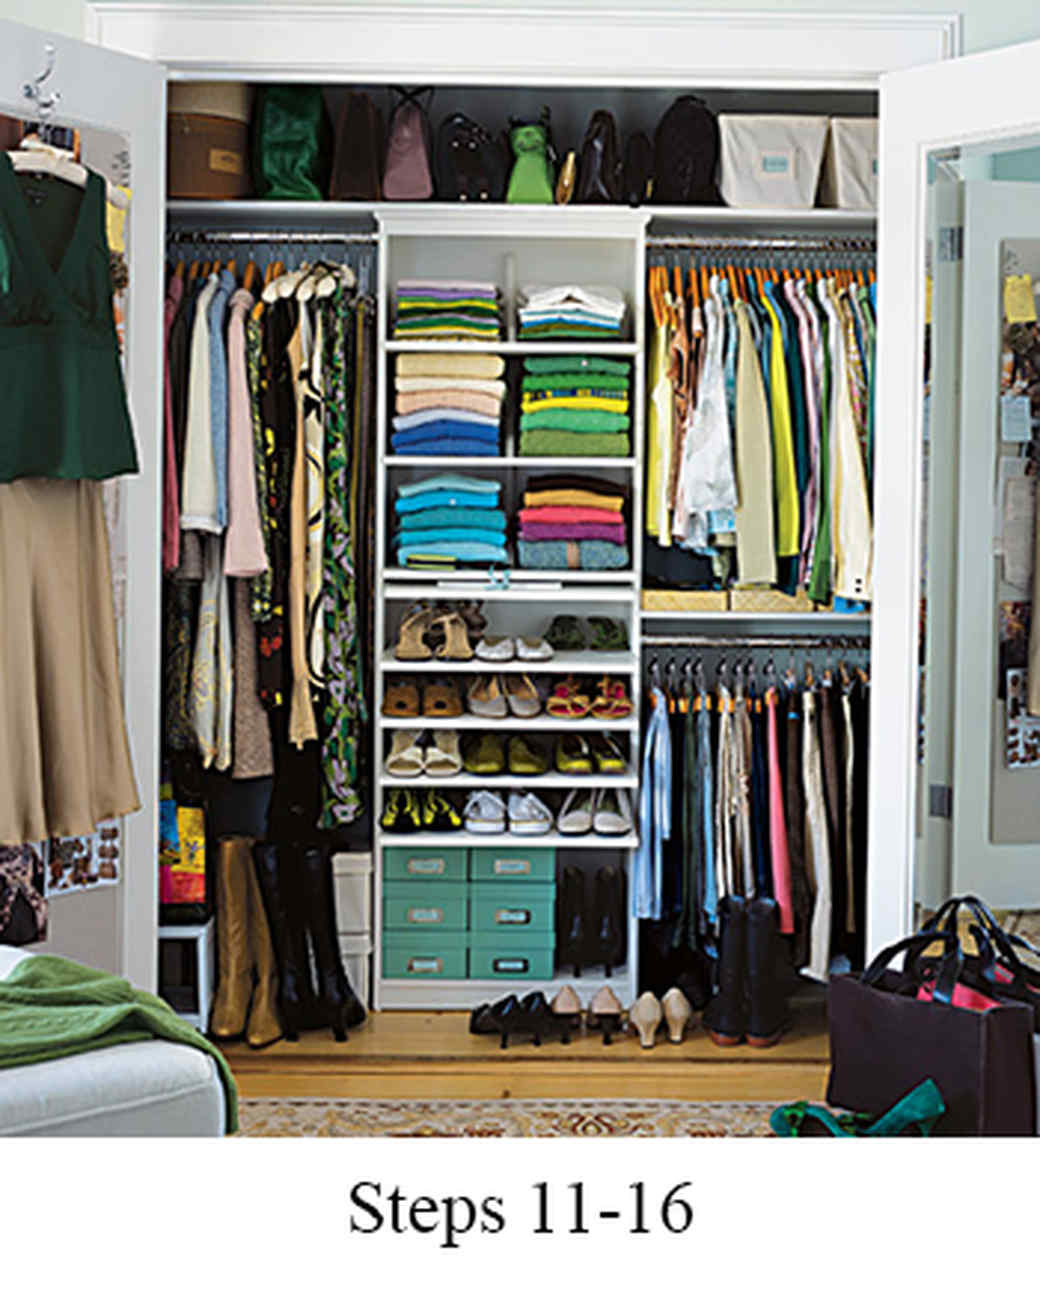 organizing hbu organization how bar your closet lifestyle to organizer tips best organize ideas